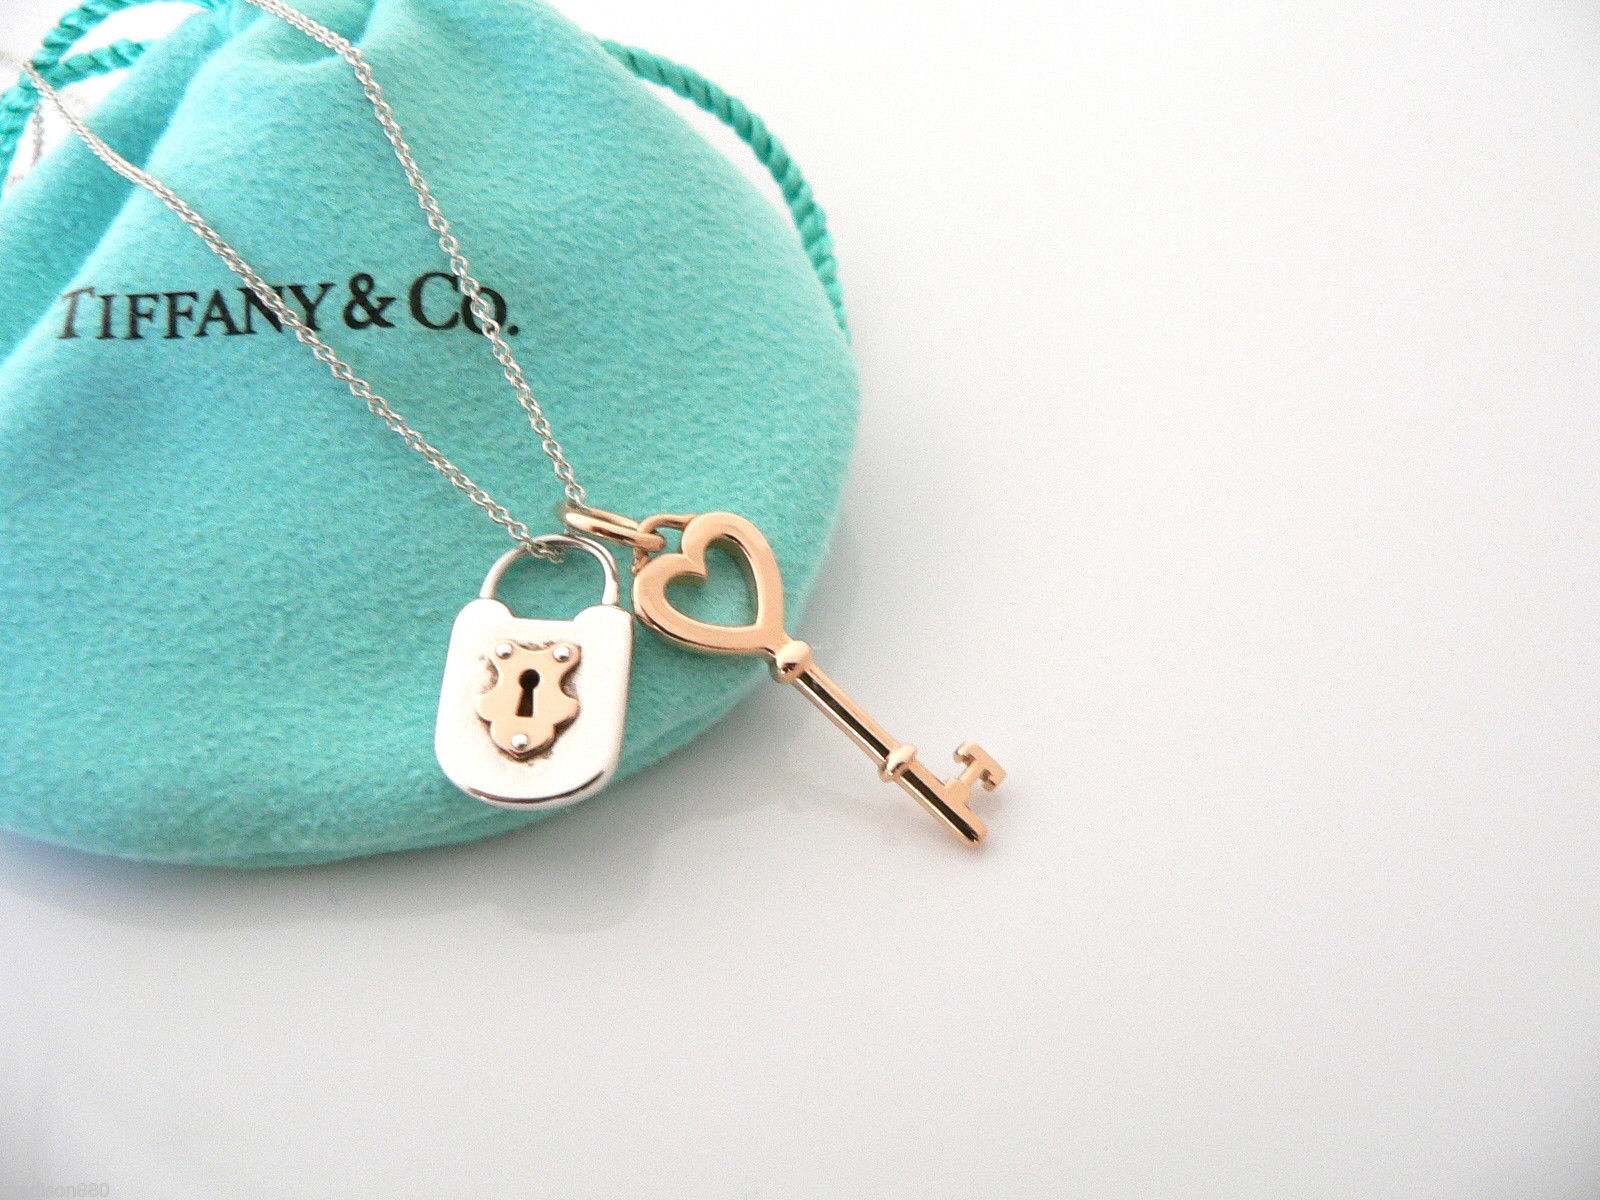 Inspired antiquity under lock key silver 18k rose gold heart key locks necklace pendant charm on ebay is perfect for daily wear 948 i love this vintage necklace aloadofball Gallery